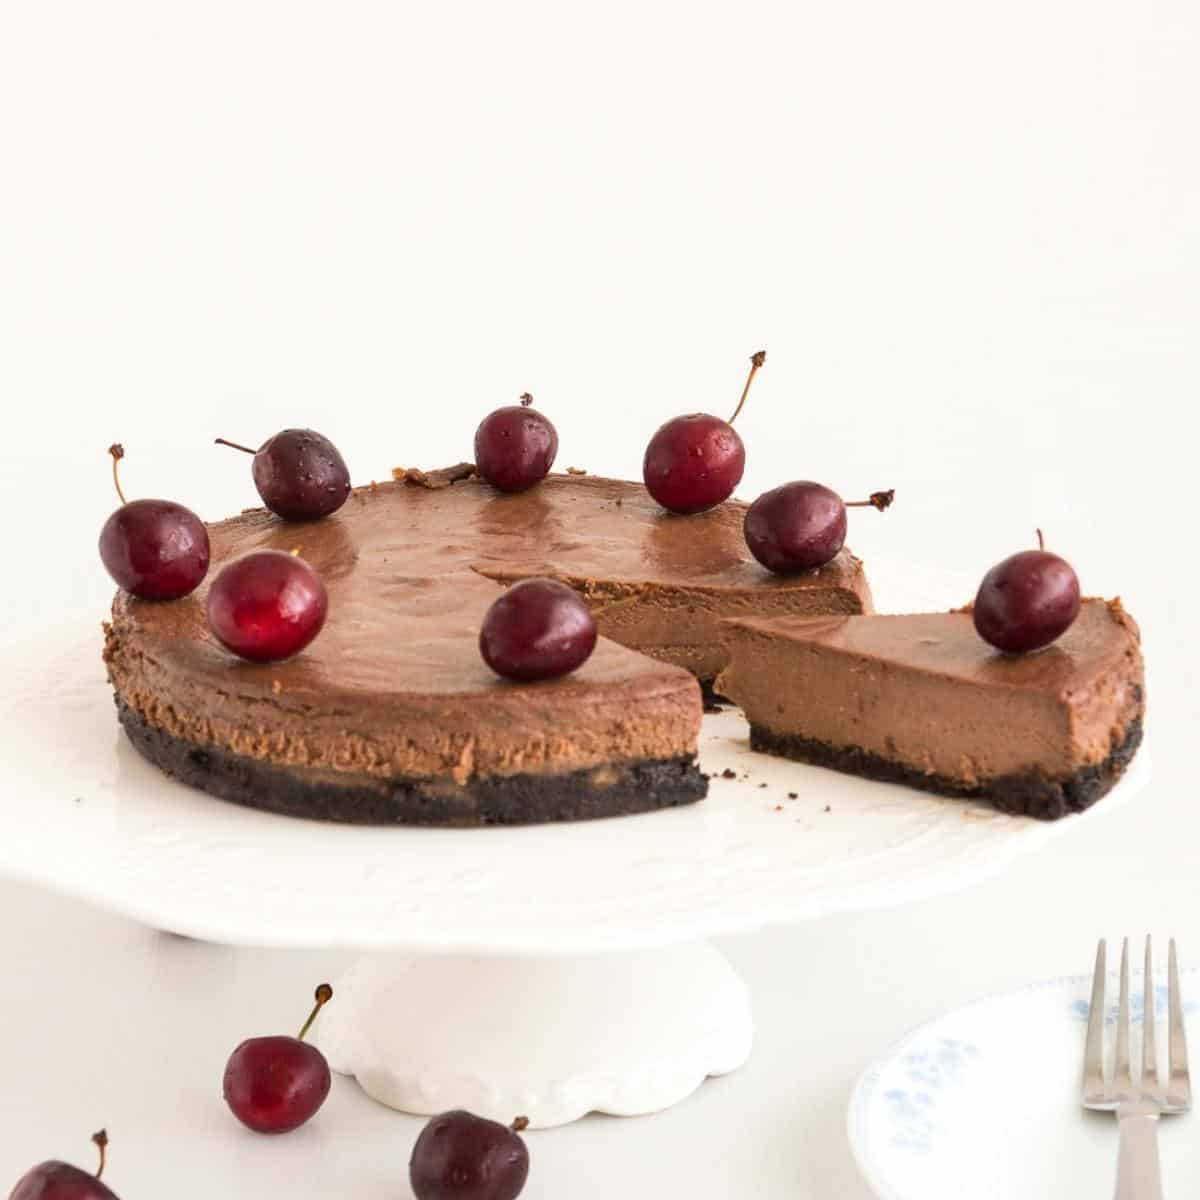 A sliced cheesecake on a cake stand.